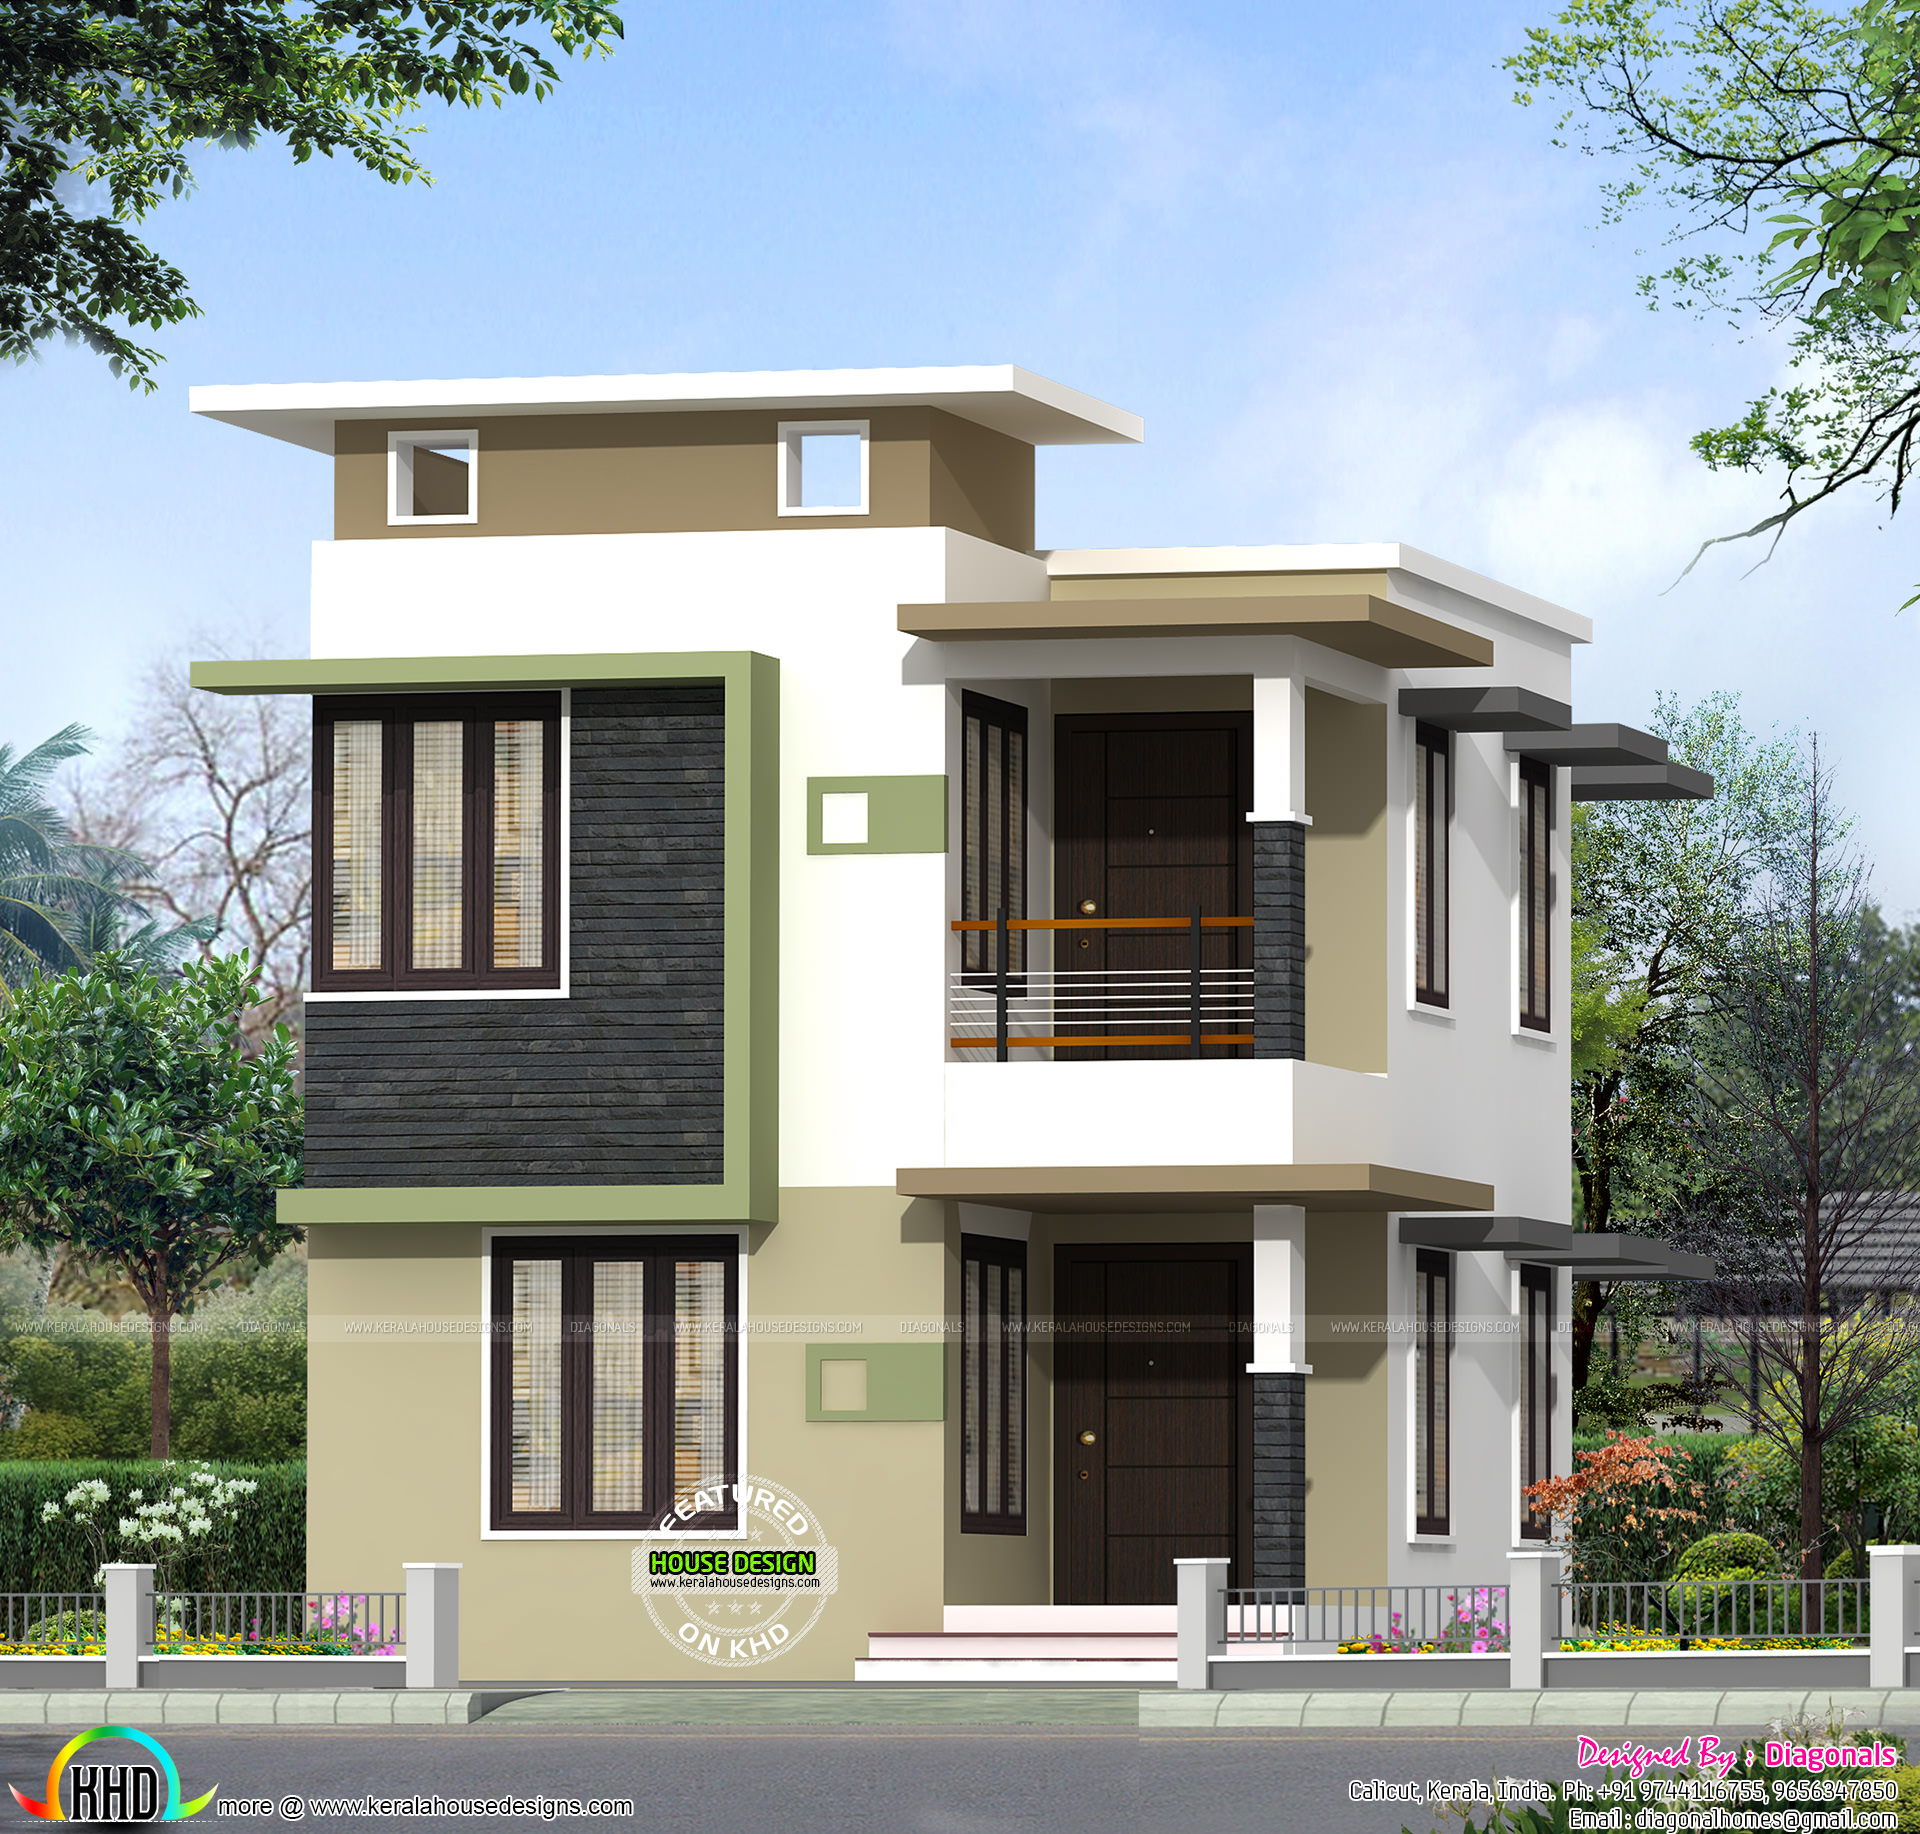 1631 Sq Ft Budget Flat Roof Home Kerala Home Design And